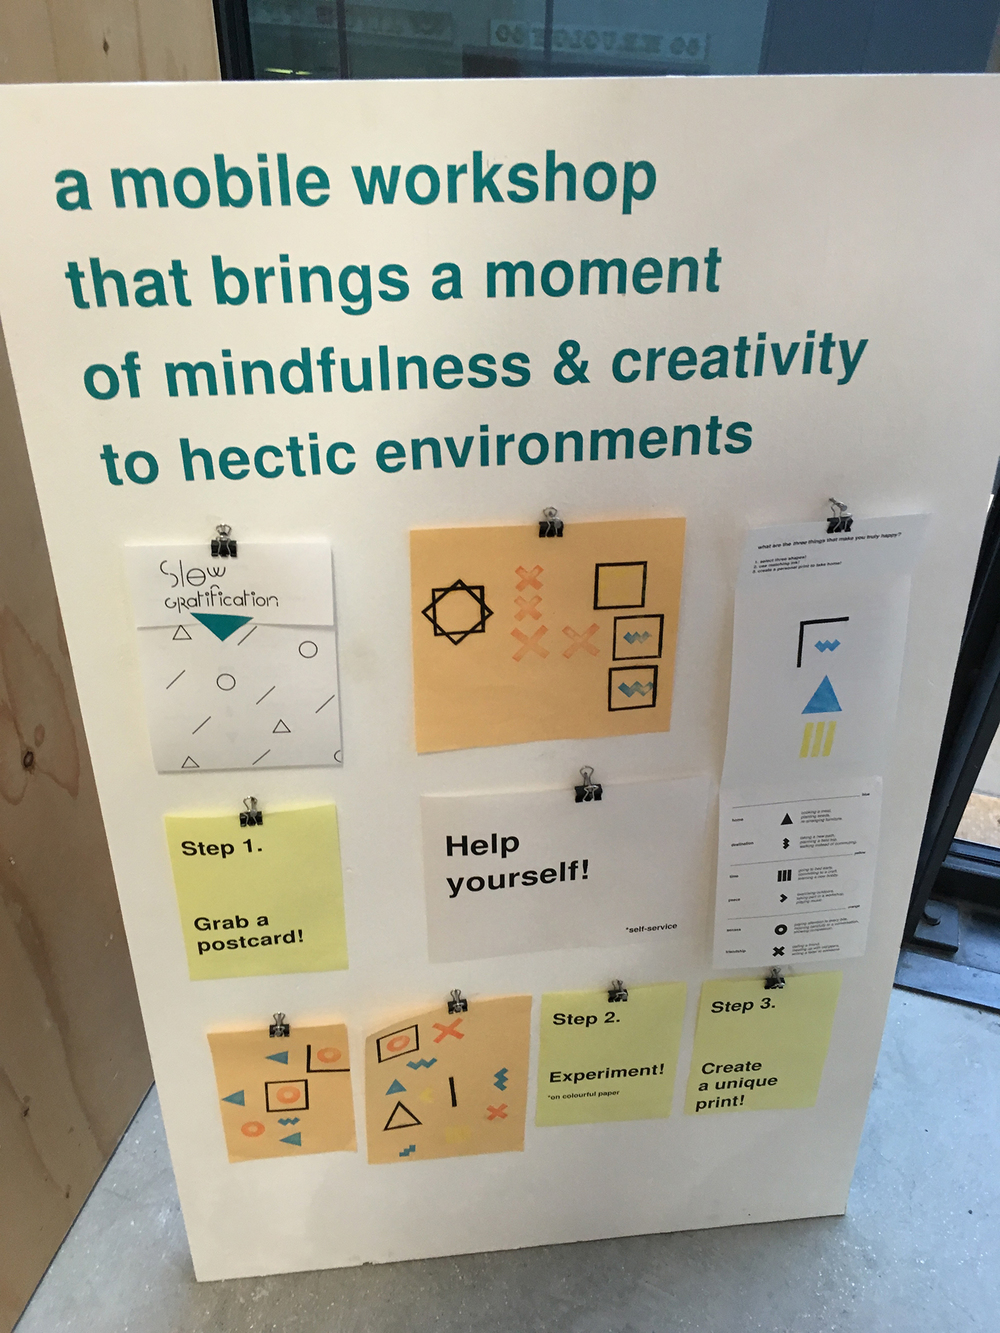 Phillipine Sohet's clever mobile workshop idea invites mindfulness in a unique way.